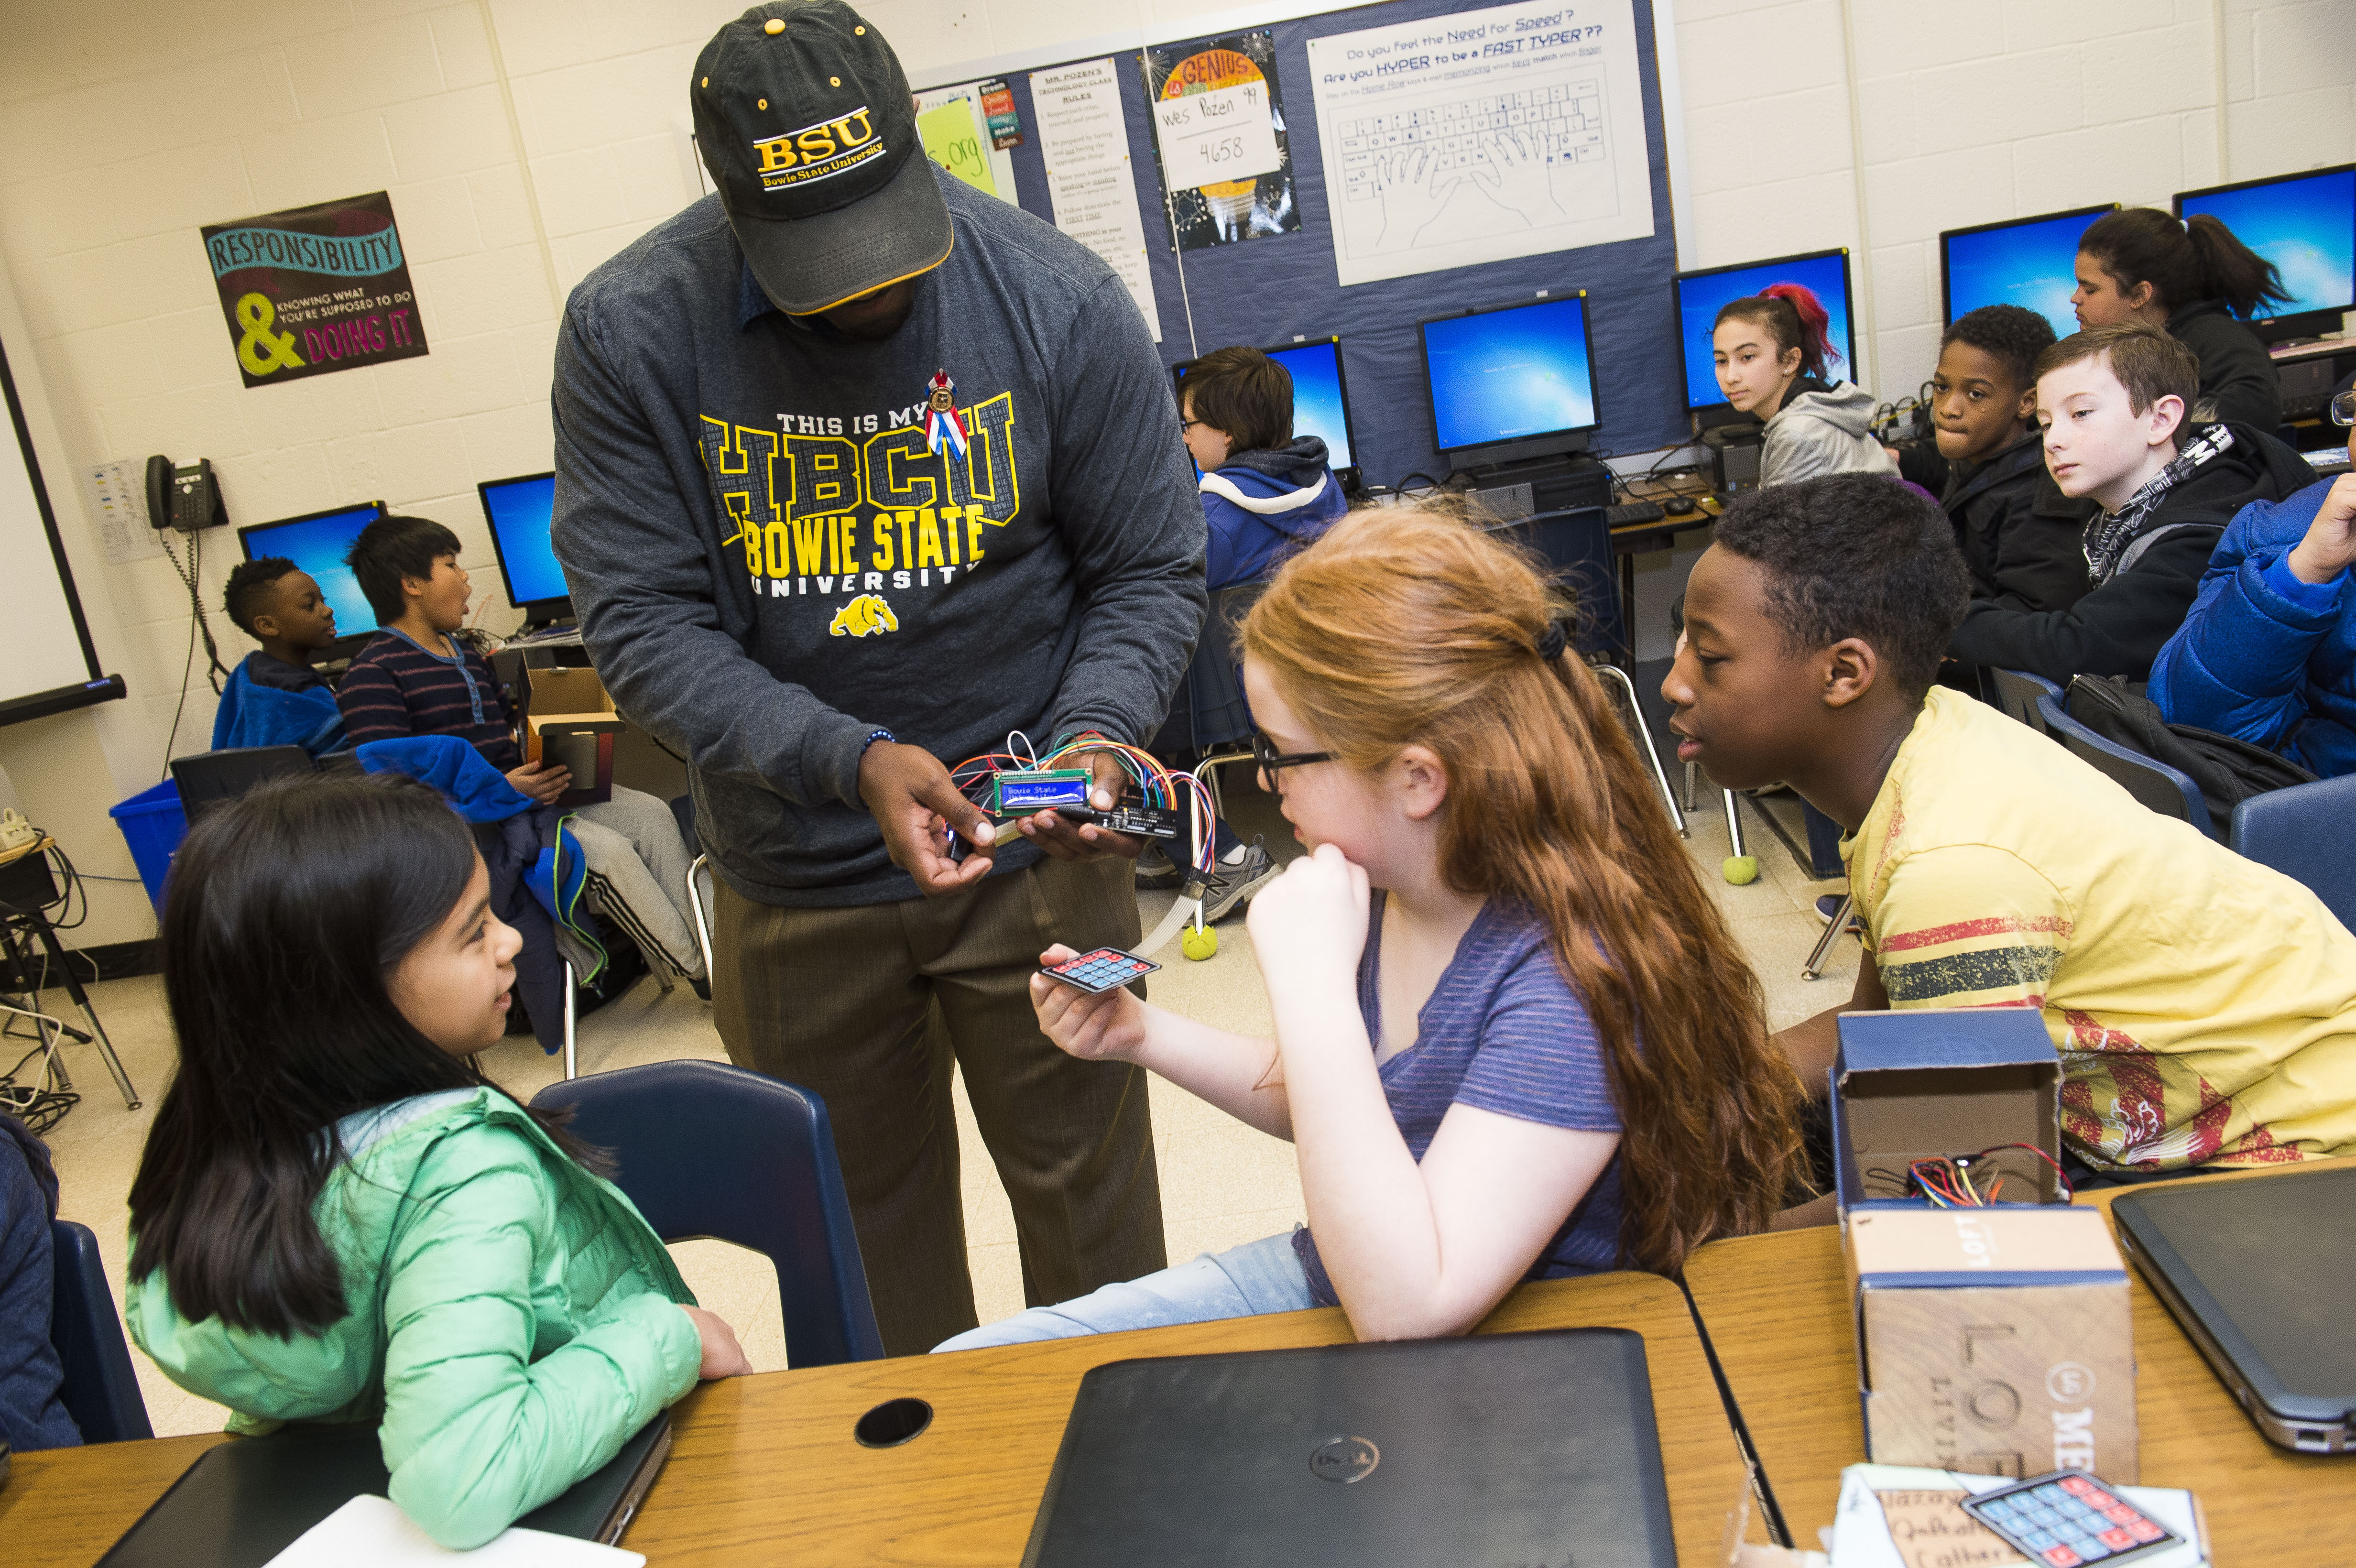 BSU volunteer work with youth on tech innovation demonstration